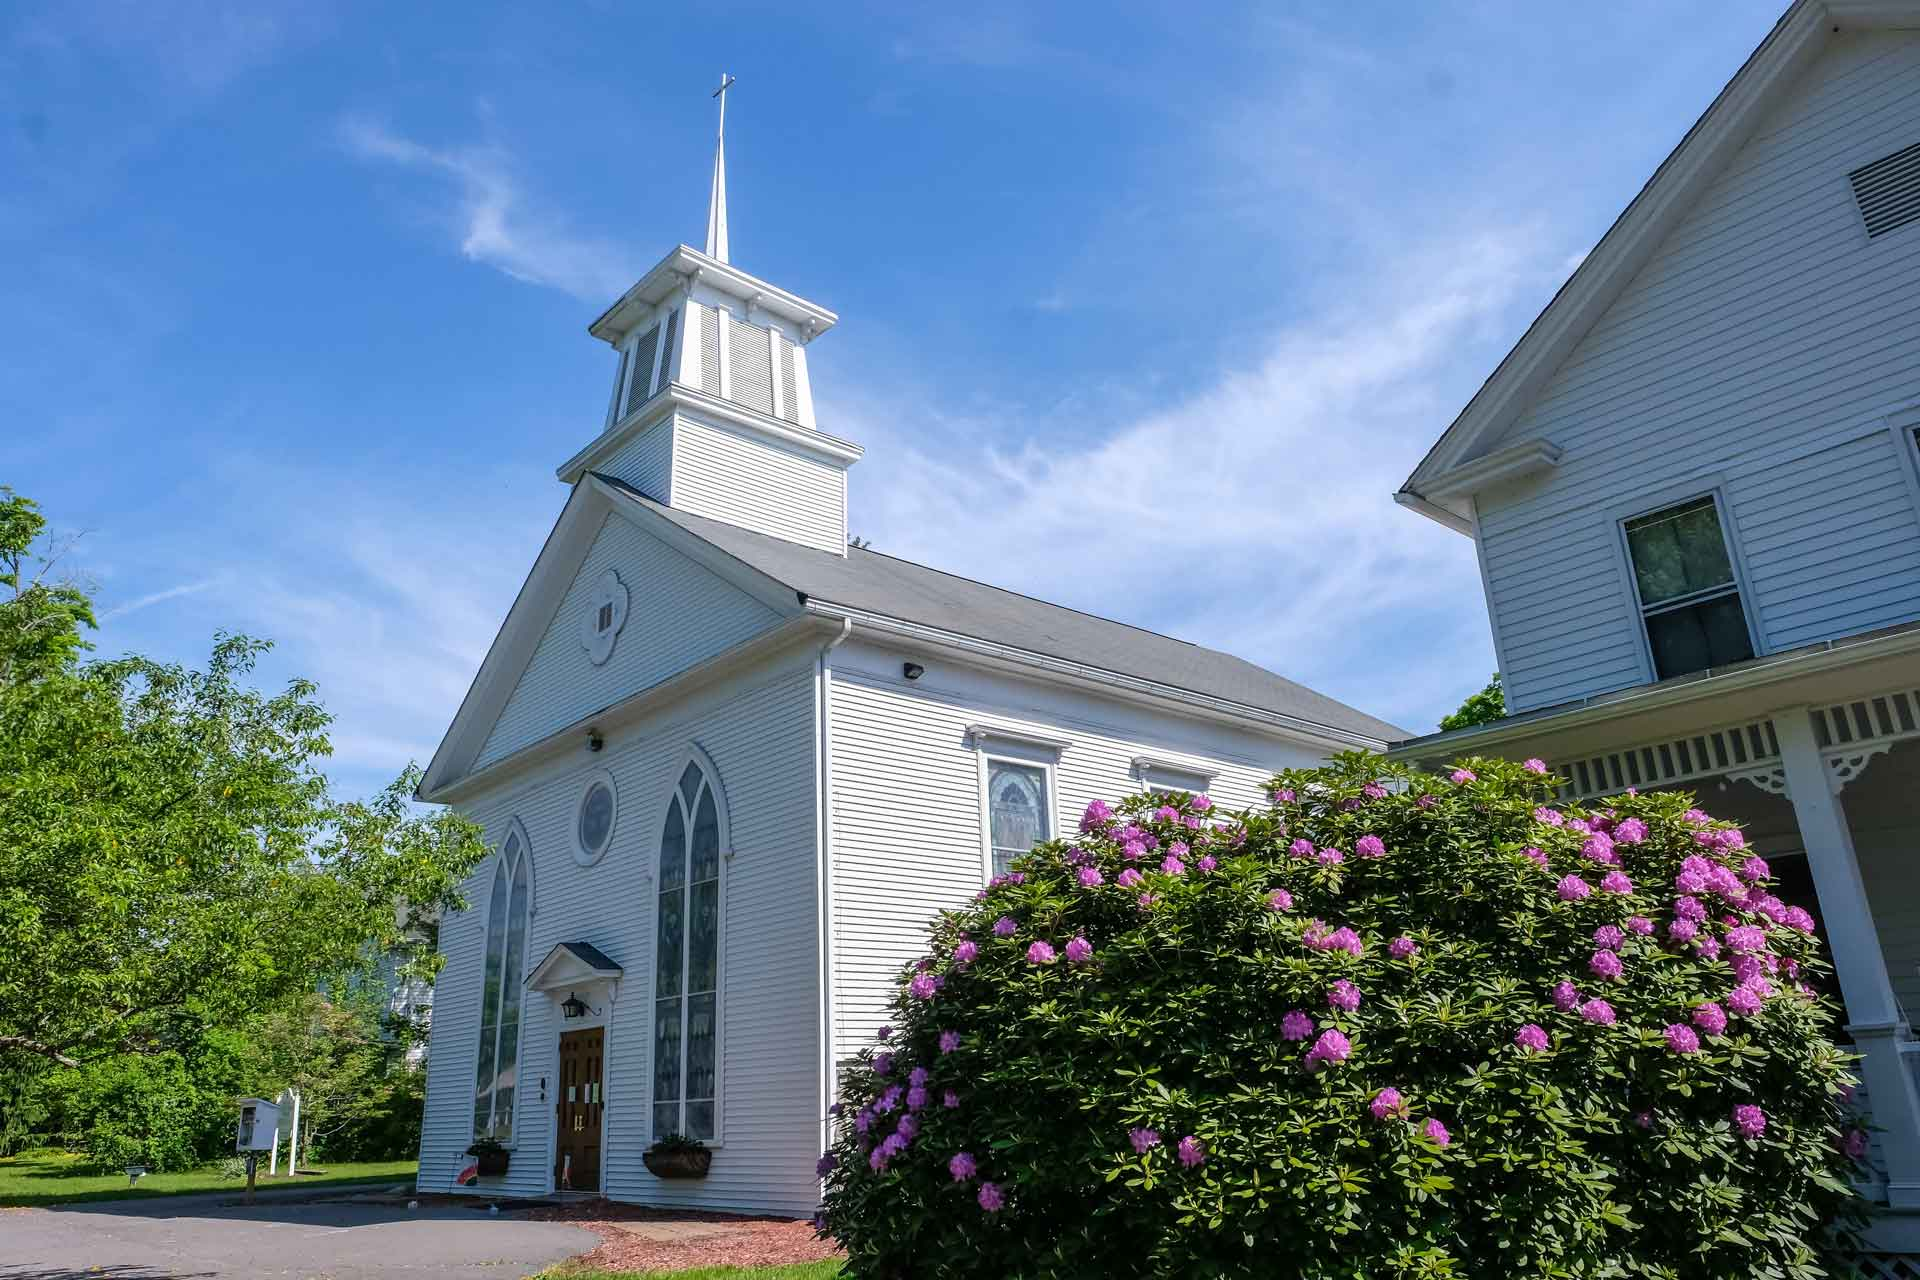 historical white methodist church with traditional stained glass windows and a steeple